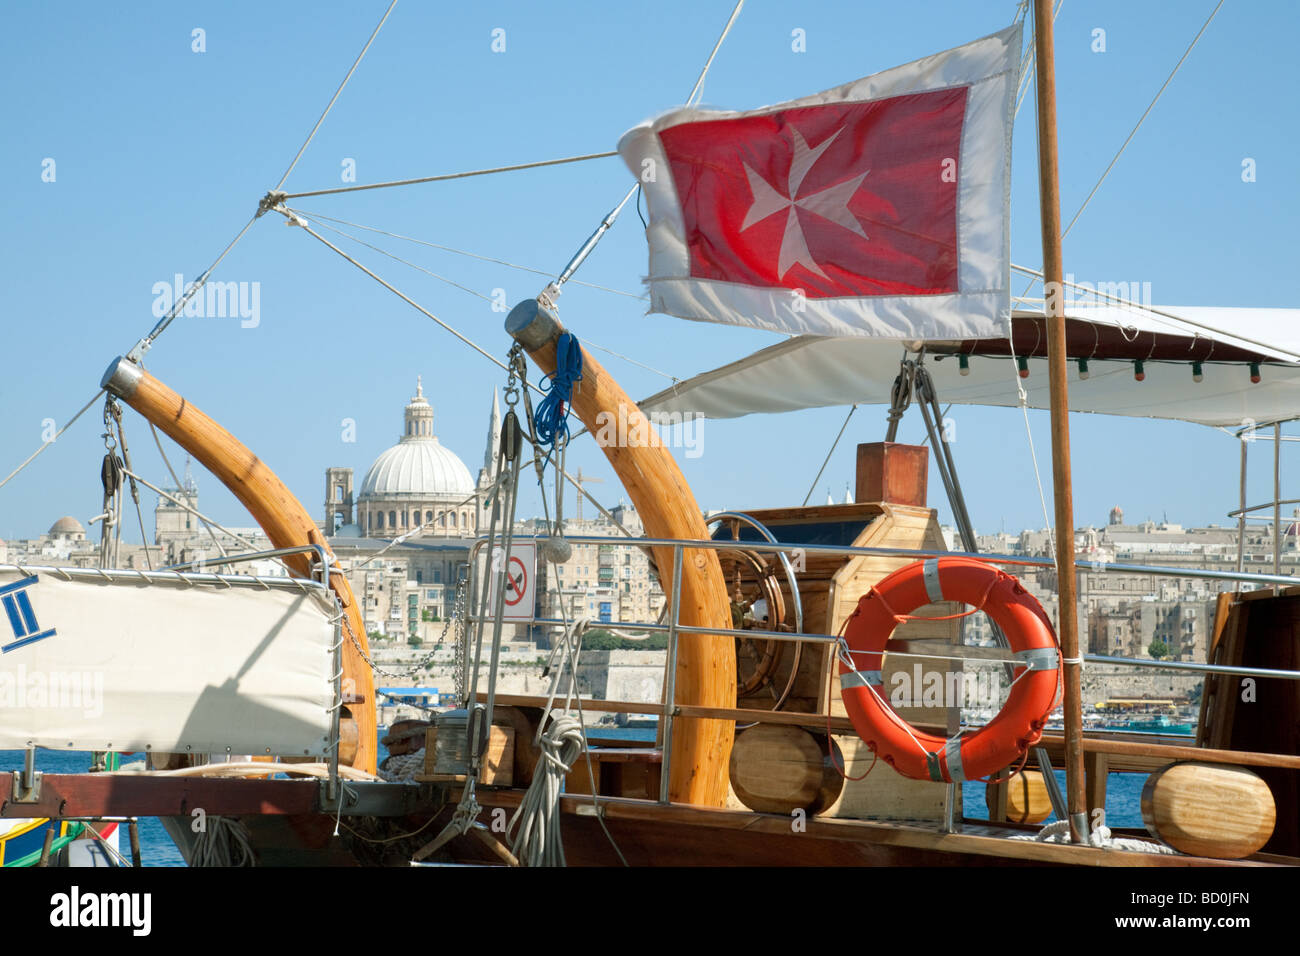 The maltese cross flag aboard a sailing boat with Valletta in the background, Malta - Stock Image